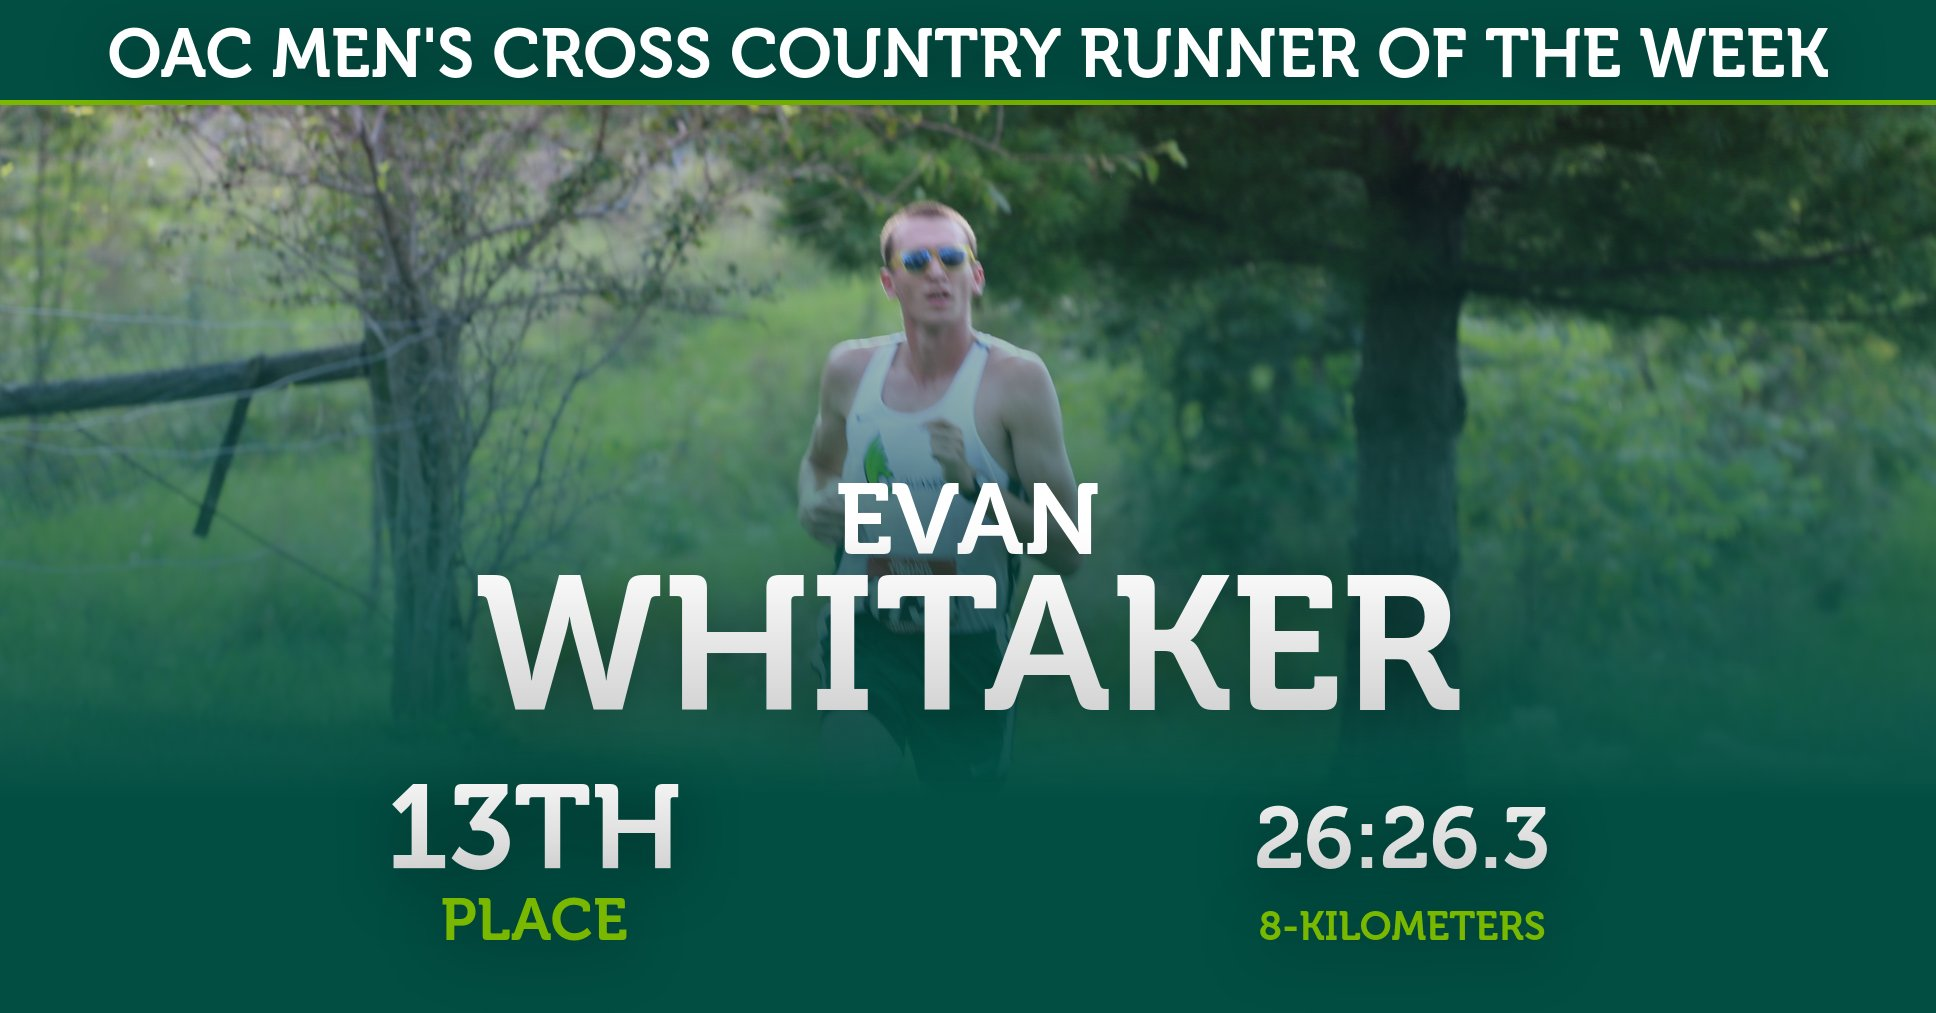 Evan Whitaker Named OAC Men's Cross Country Runner of the Week